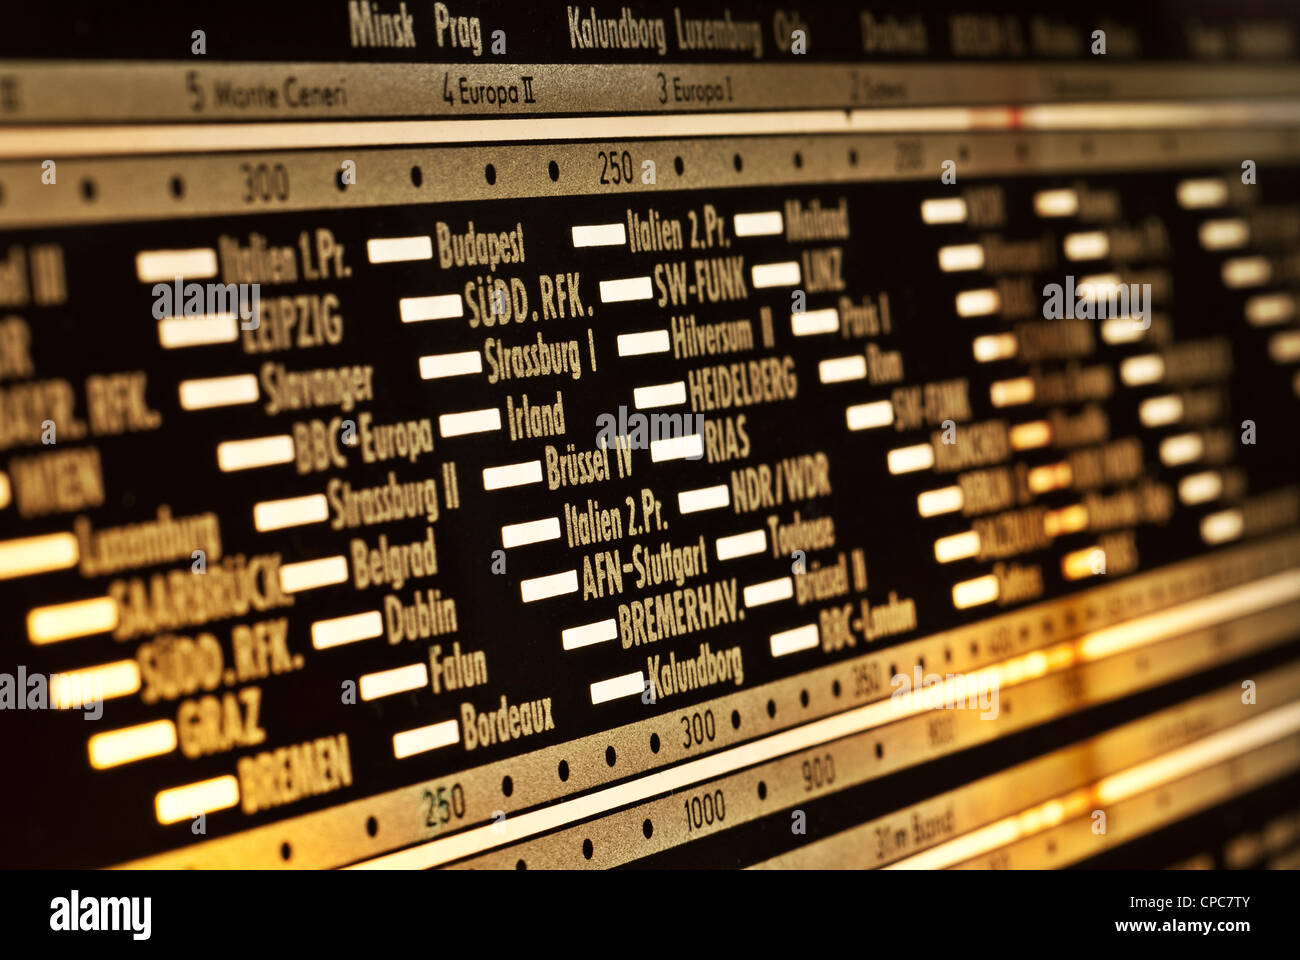 Analog display of a tube radio. - Stock Image